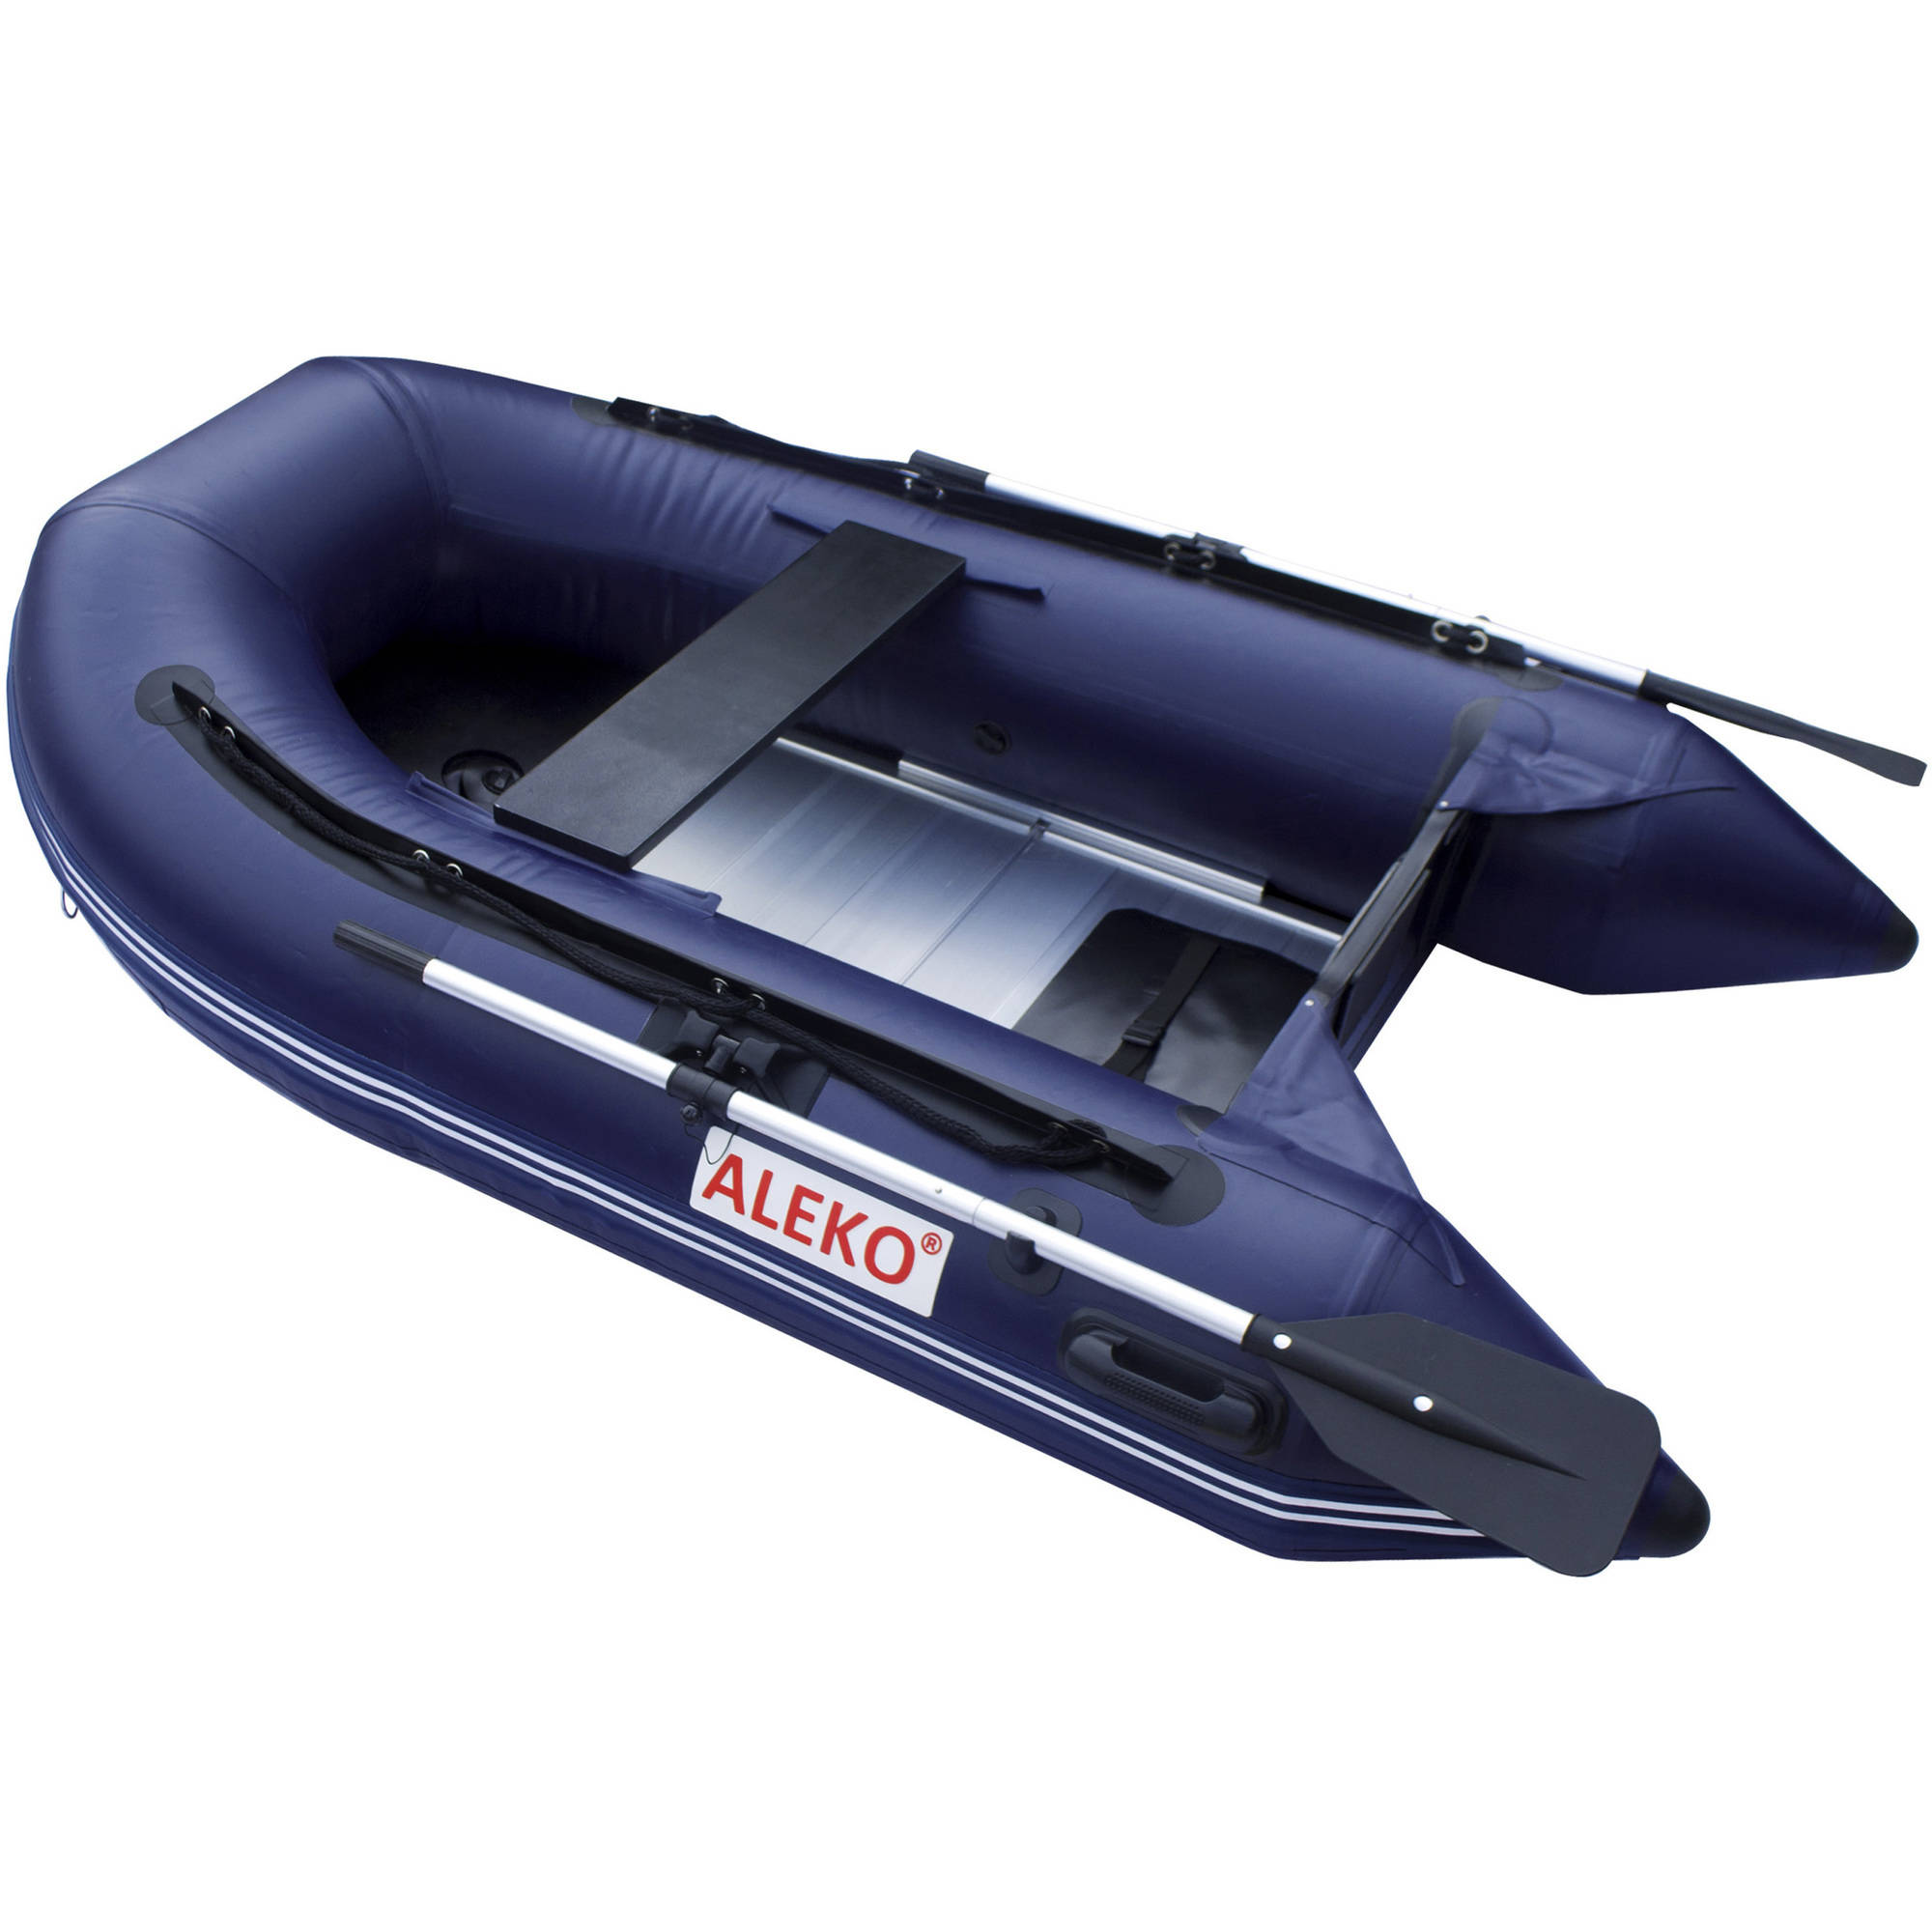 "ALEKO Boat 8'4"" Inflatable Boat with Aluminum Floor, Blue"